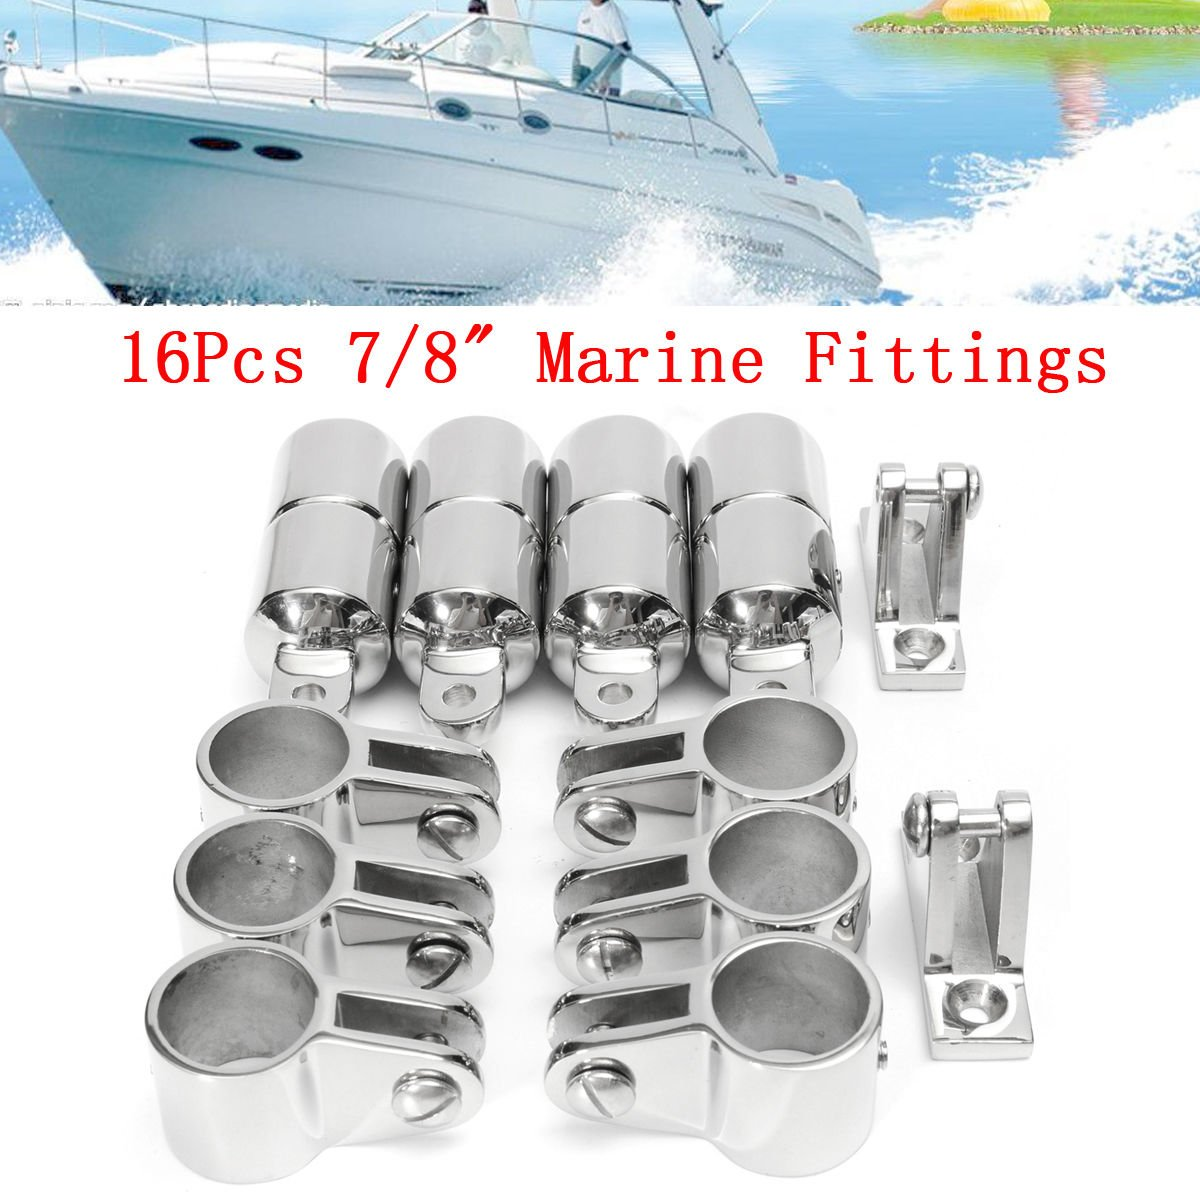 16Pcs 4 Bow 7/8'' Bimini Top Boat Stainless Steel Fittings Marine Hardware Set by CISUNG